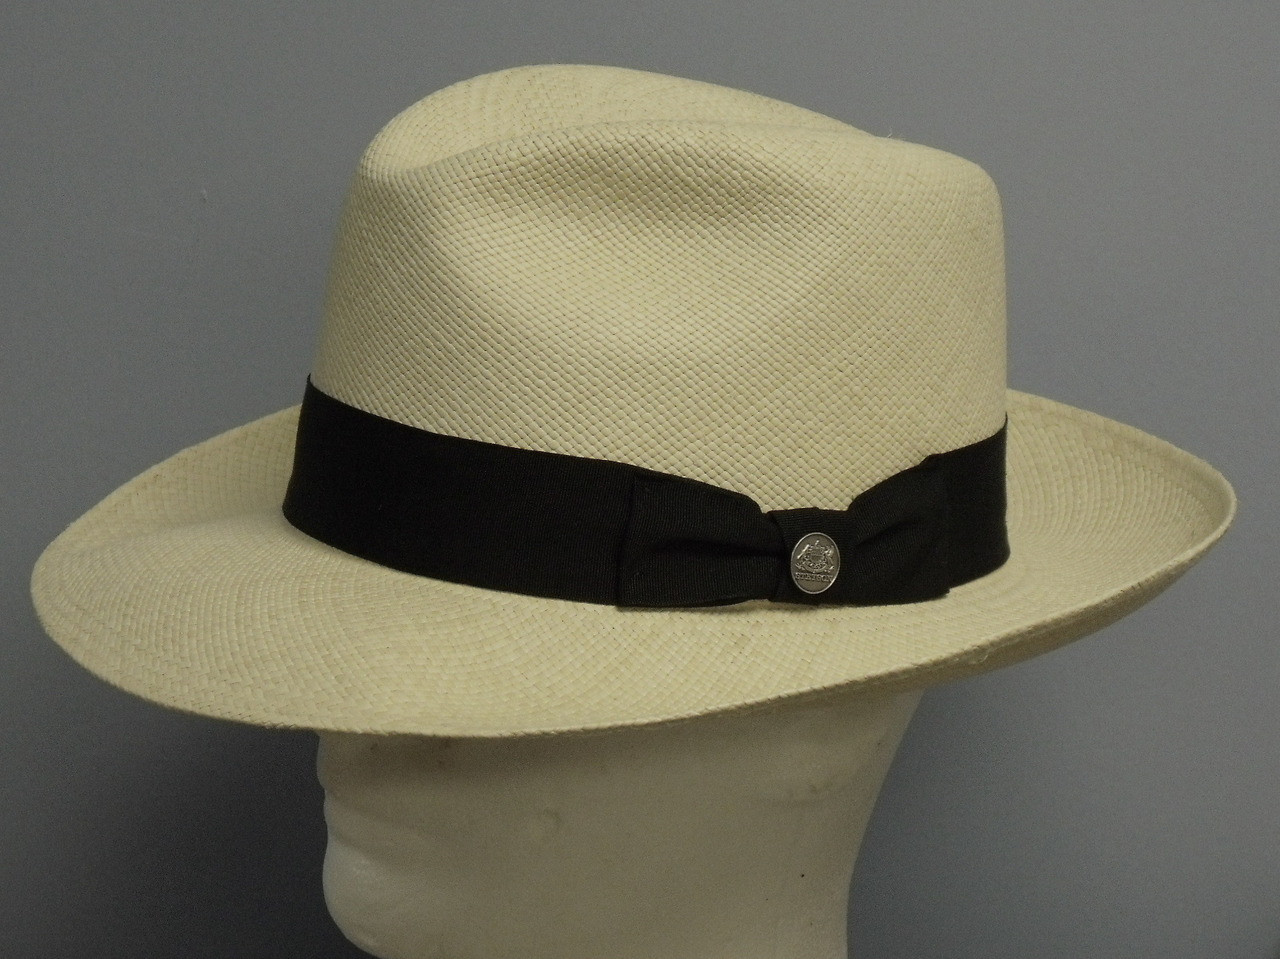 e40c4dad9c88b Stetson Centerdent Panama Straw Fedora Hat - One 2 mini Ranch